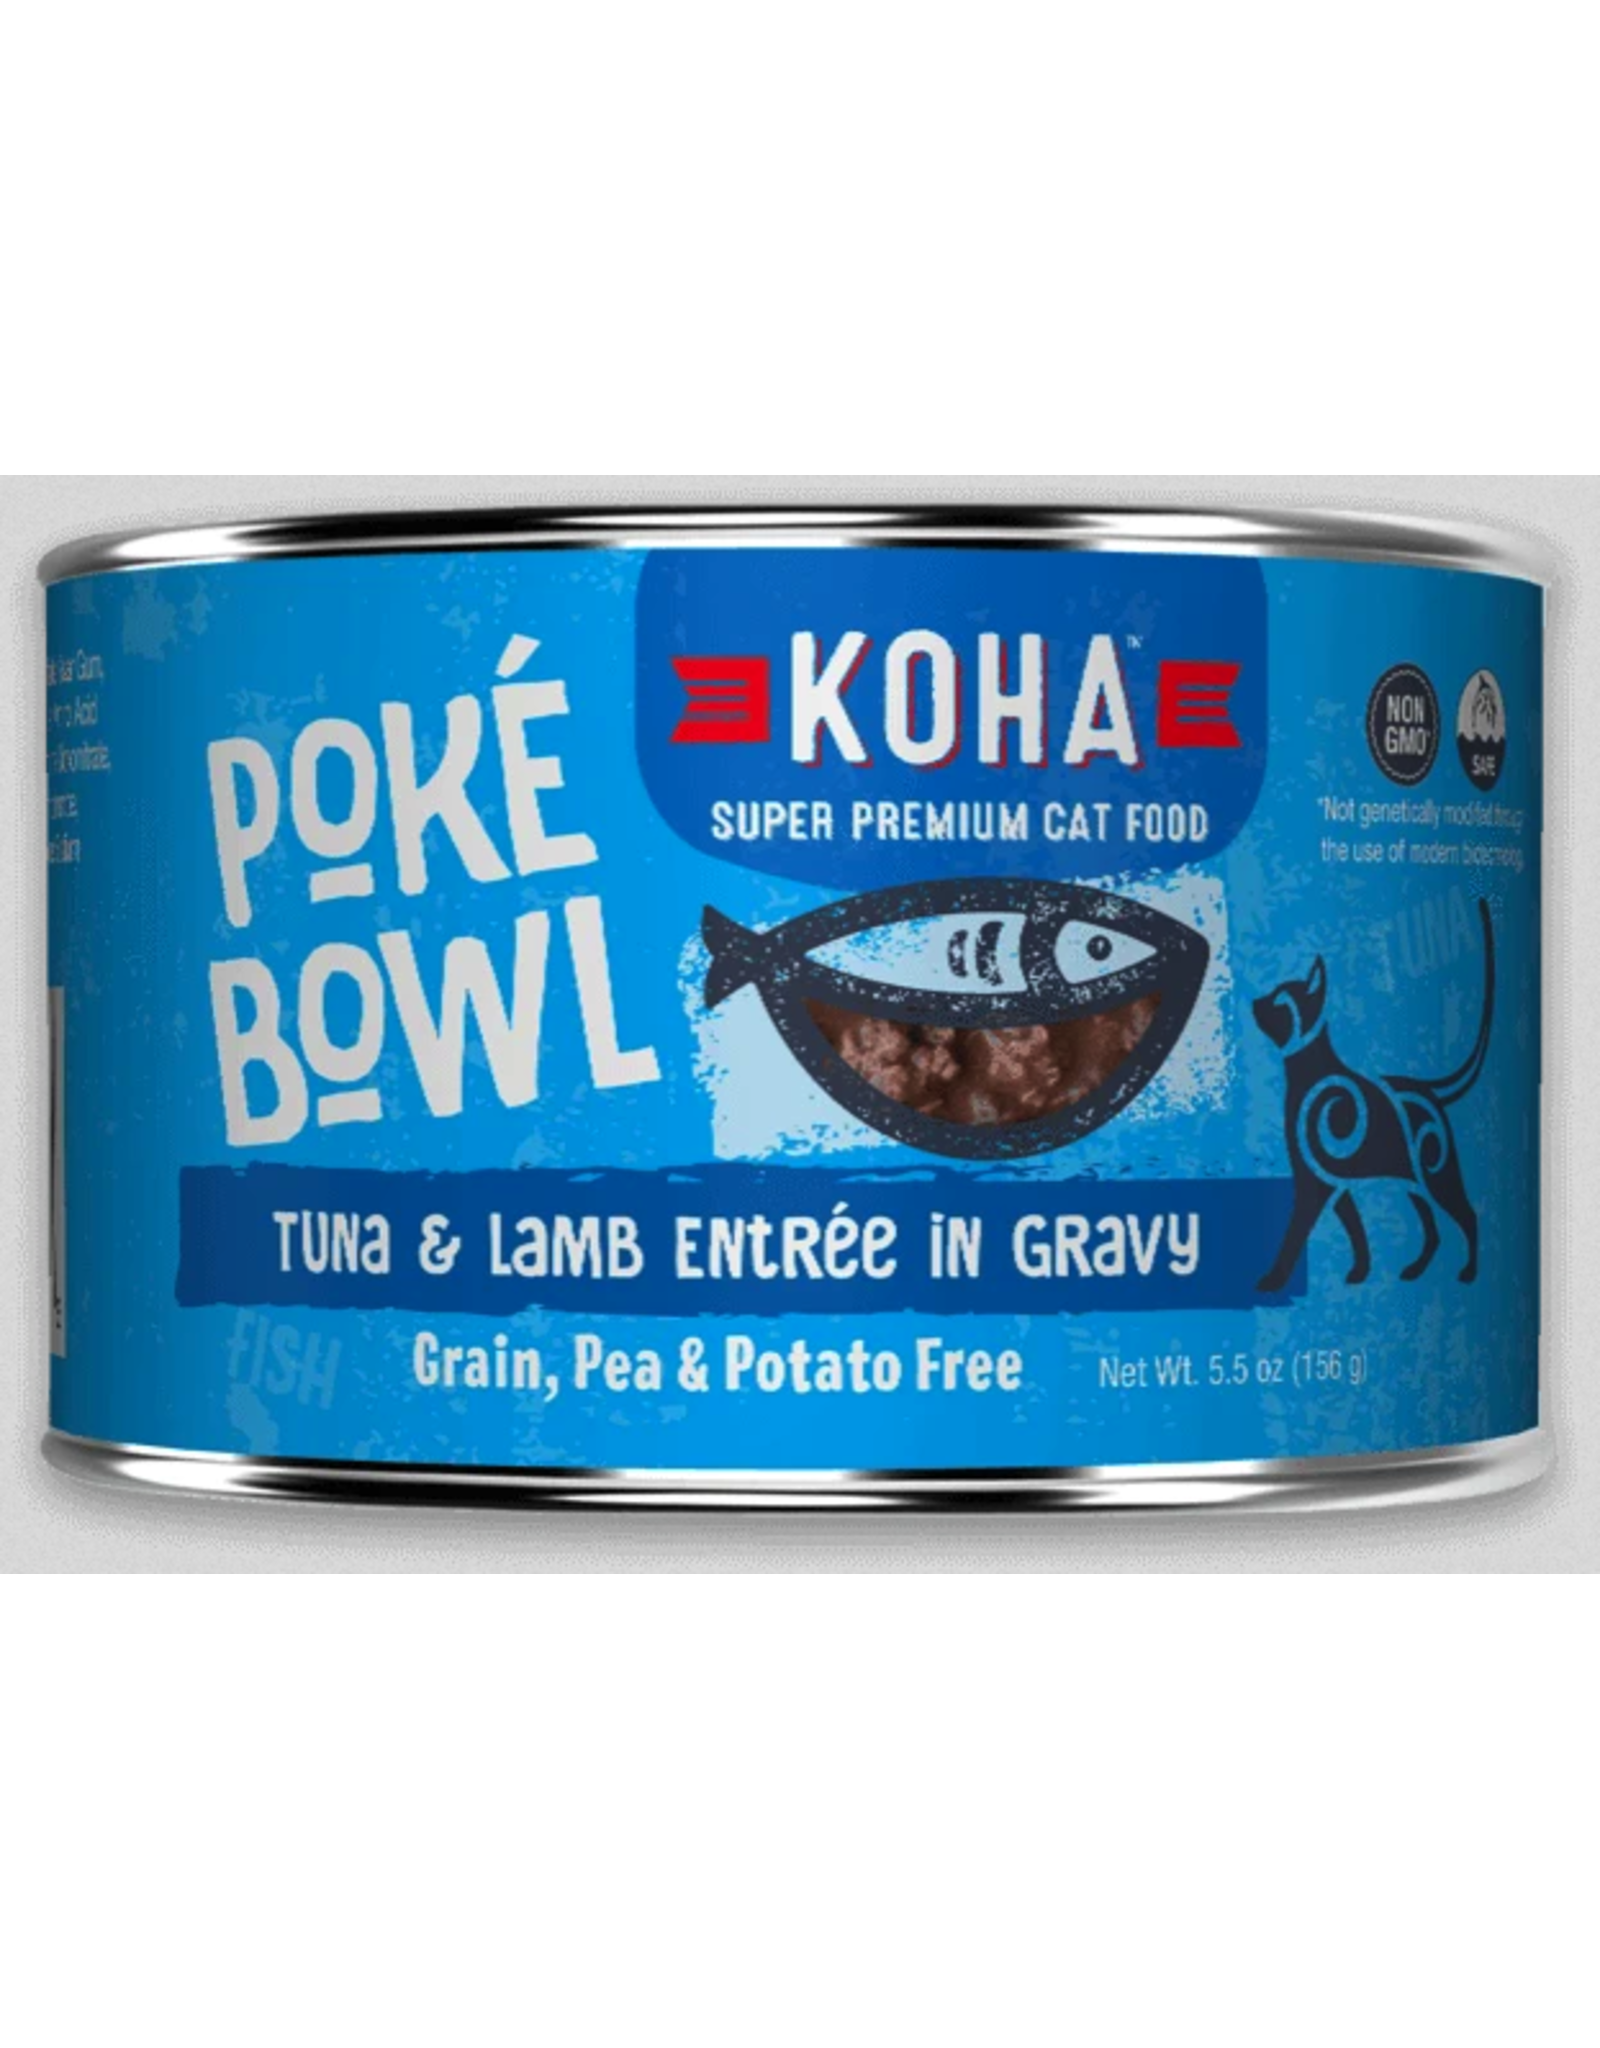 Koha Pet Koha Cat Poke Bowl Tuna Lamb Can 5.5oz